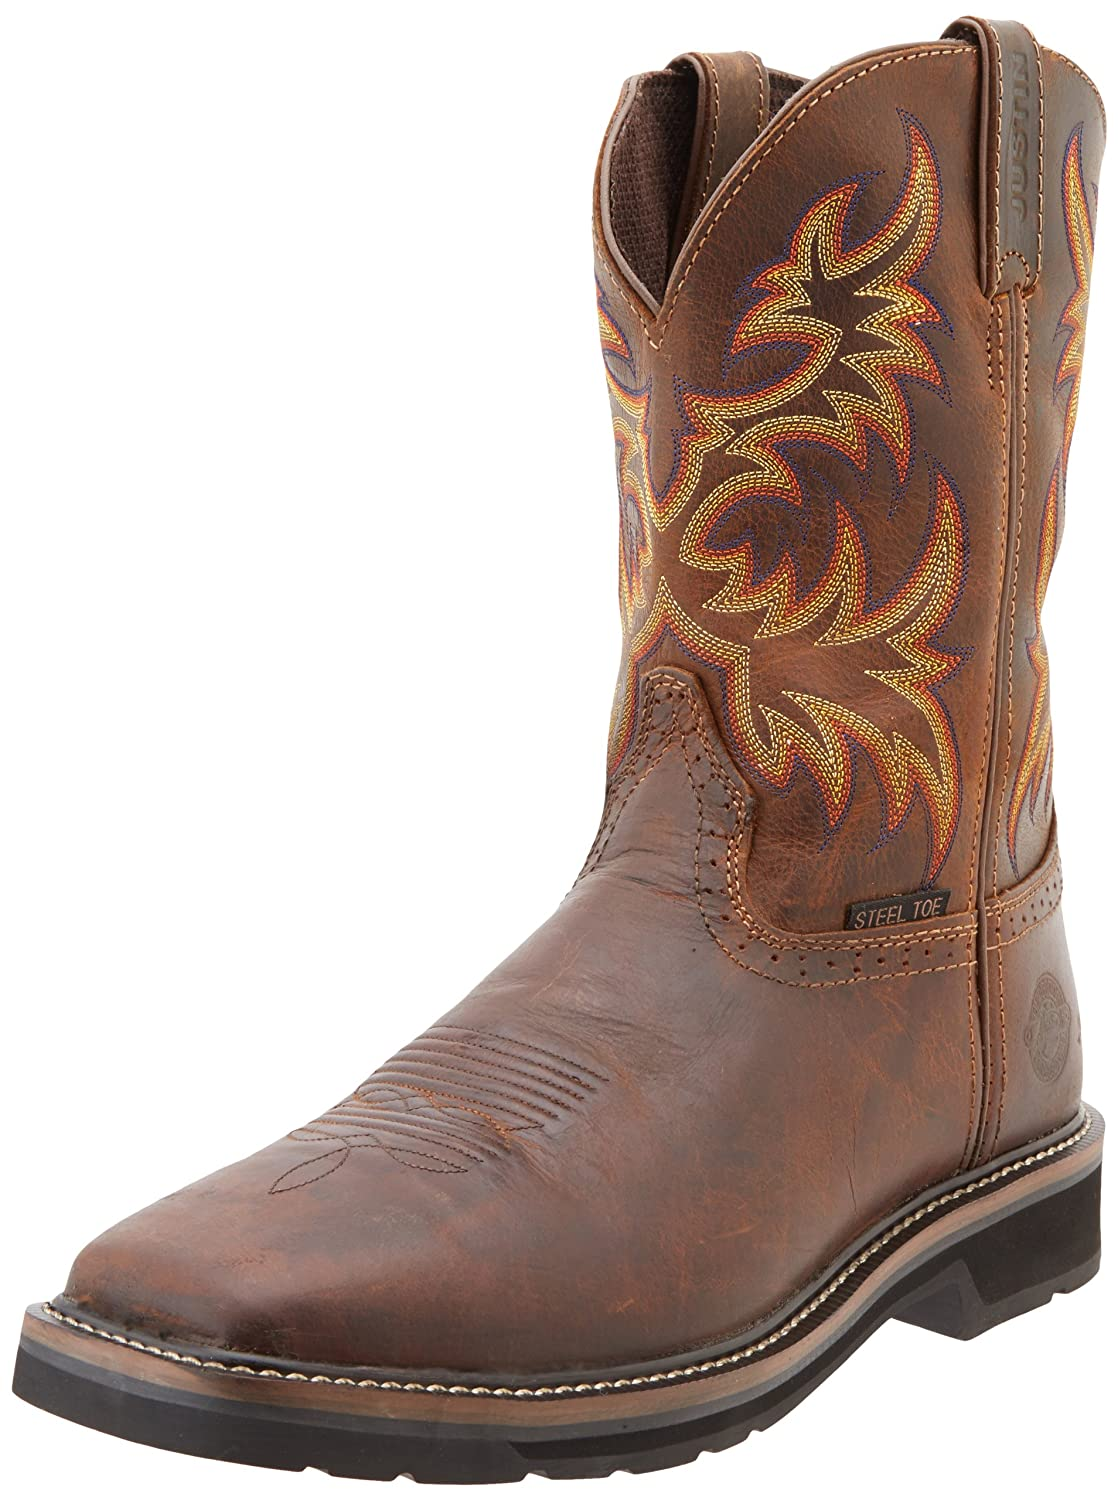 These Boots Were Made For Strutting: Justin Original Work Boots Men's Stampede Collection 11